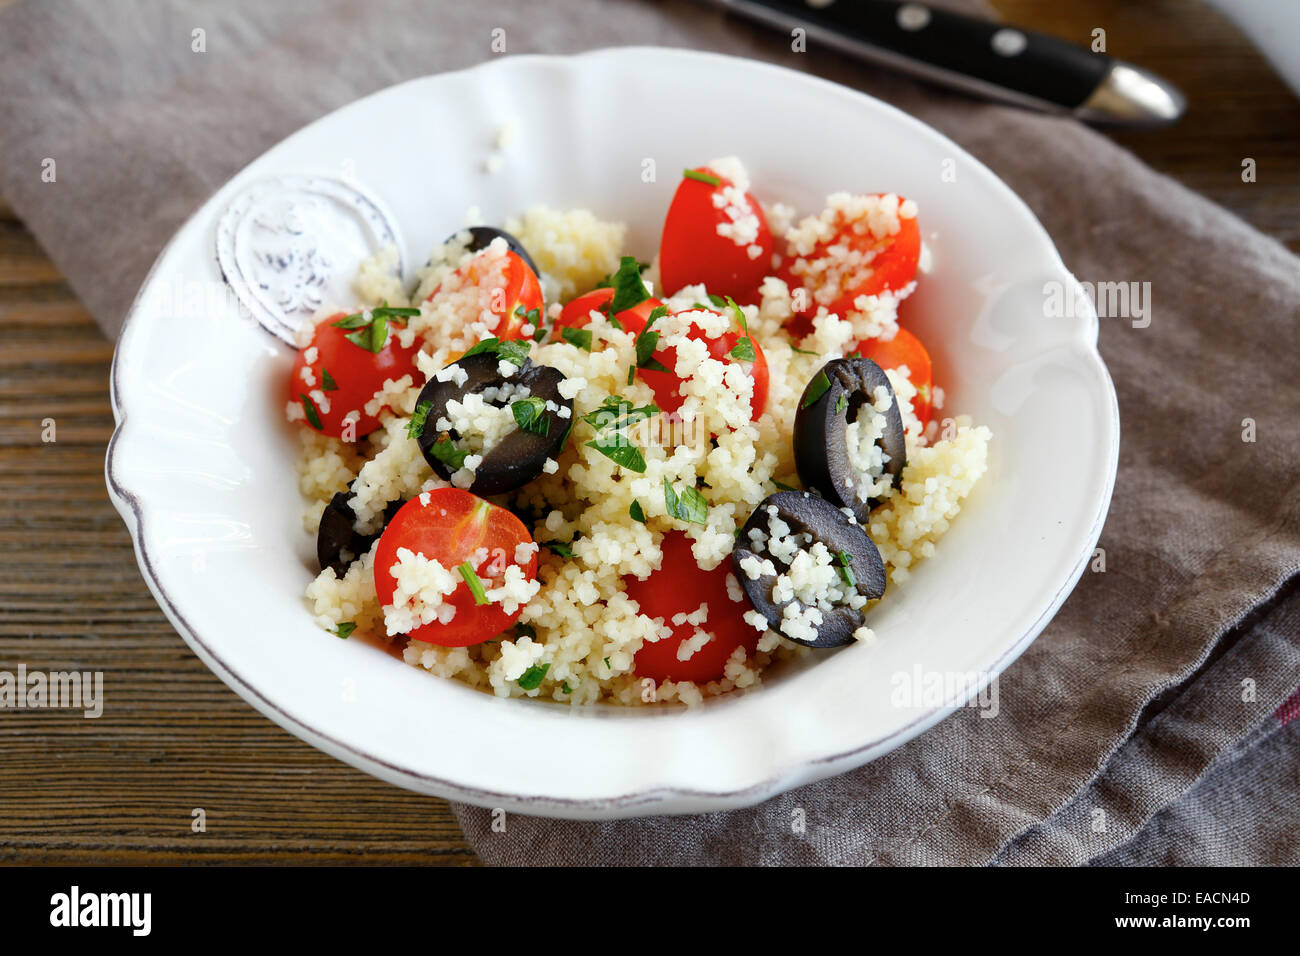 Delicious salad couscous with vegetables and olives on a plate, close up - Stock Image